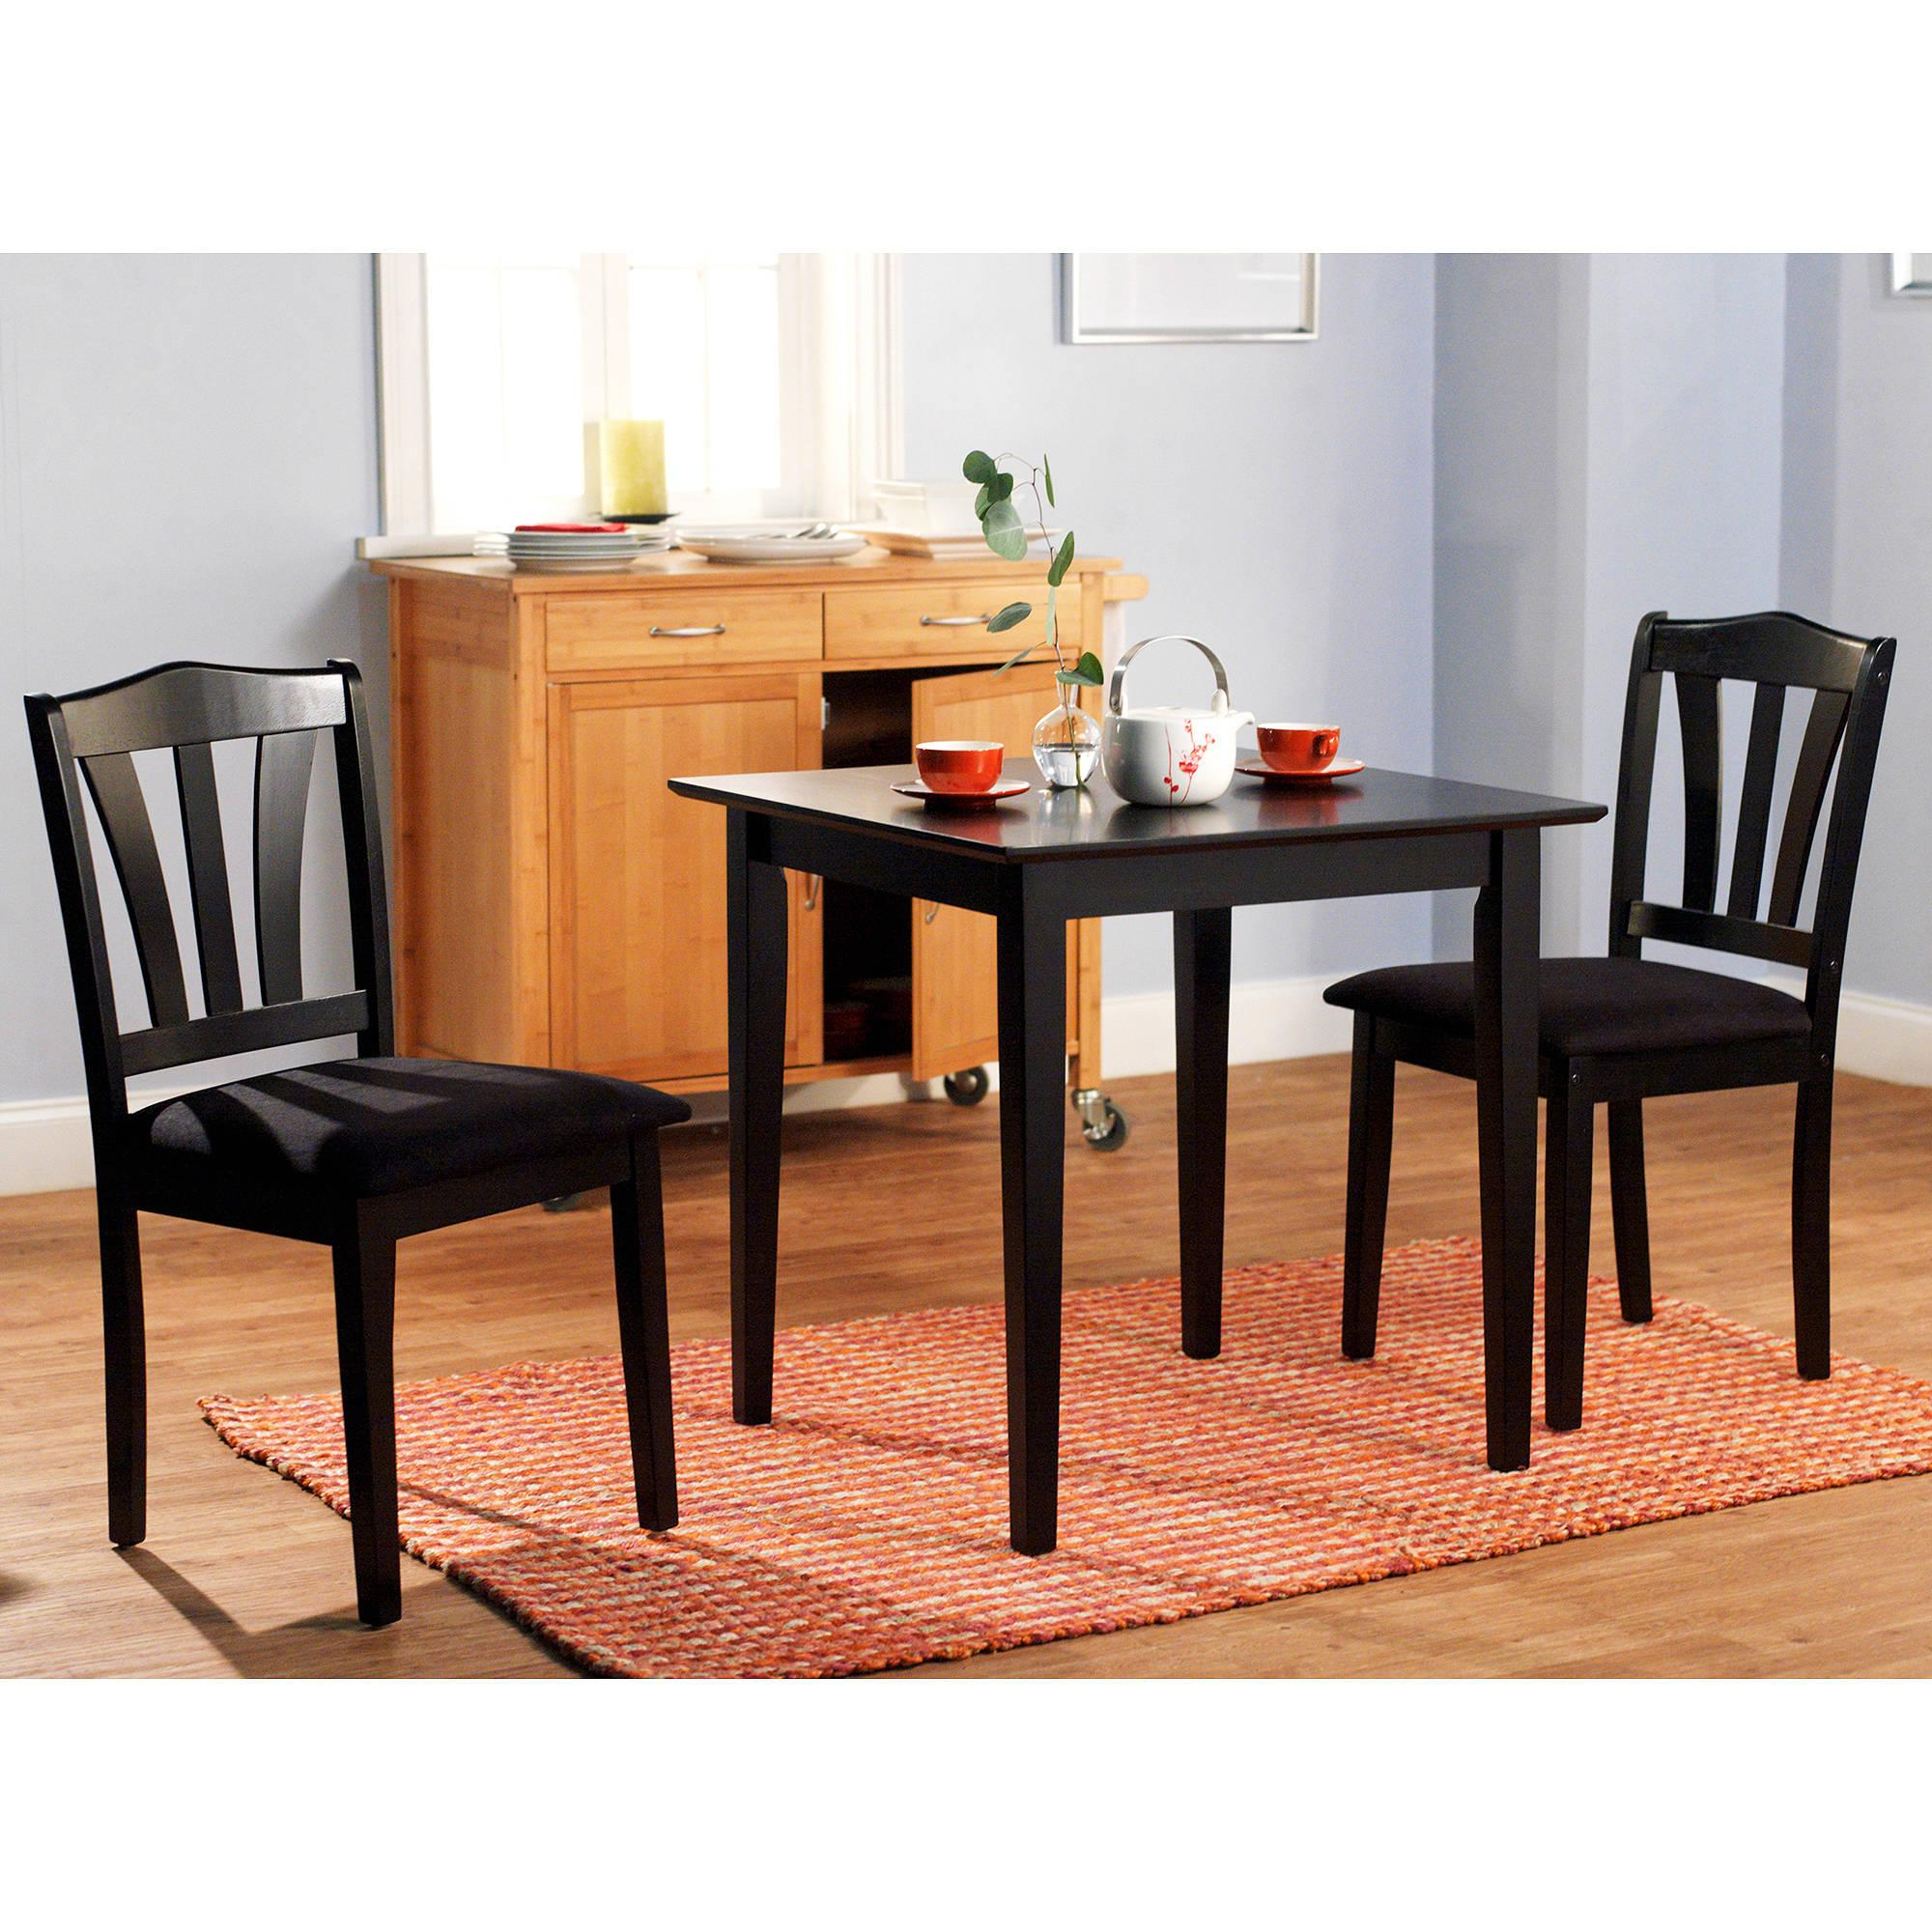 3 Pieces Dining Tables And Chair Set Regarding Widely Used Details About 3 Piece Dining Set Table 2 Chairs Kitchen Room Wood Furniture  Dinette Modern New (Gallery 7 of 30)